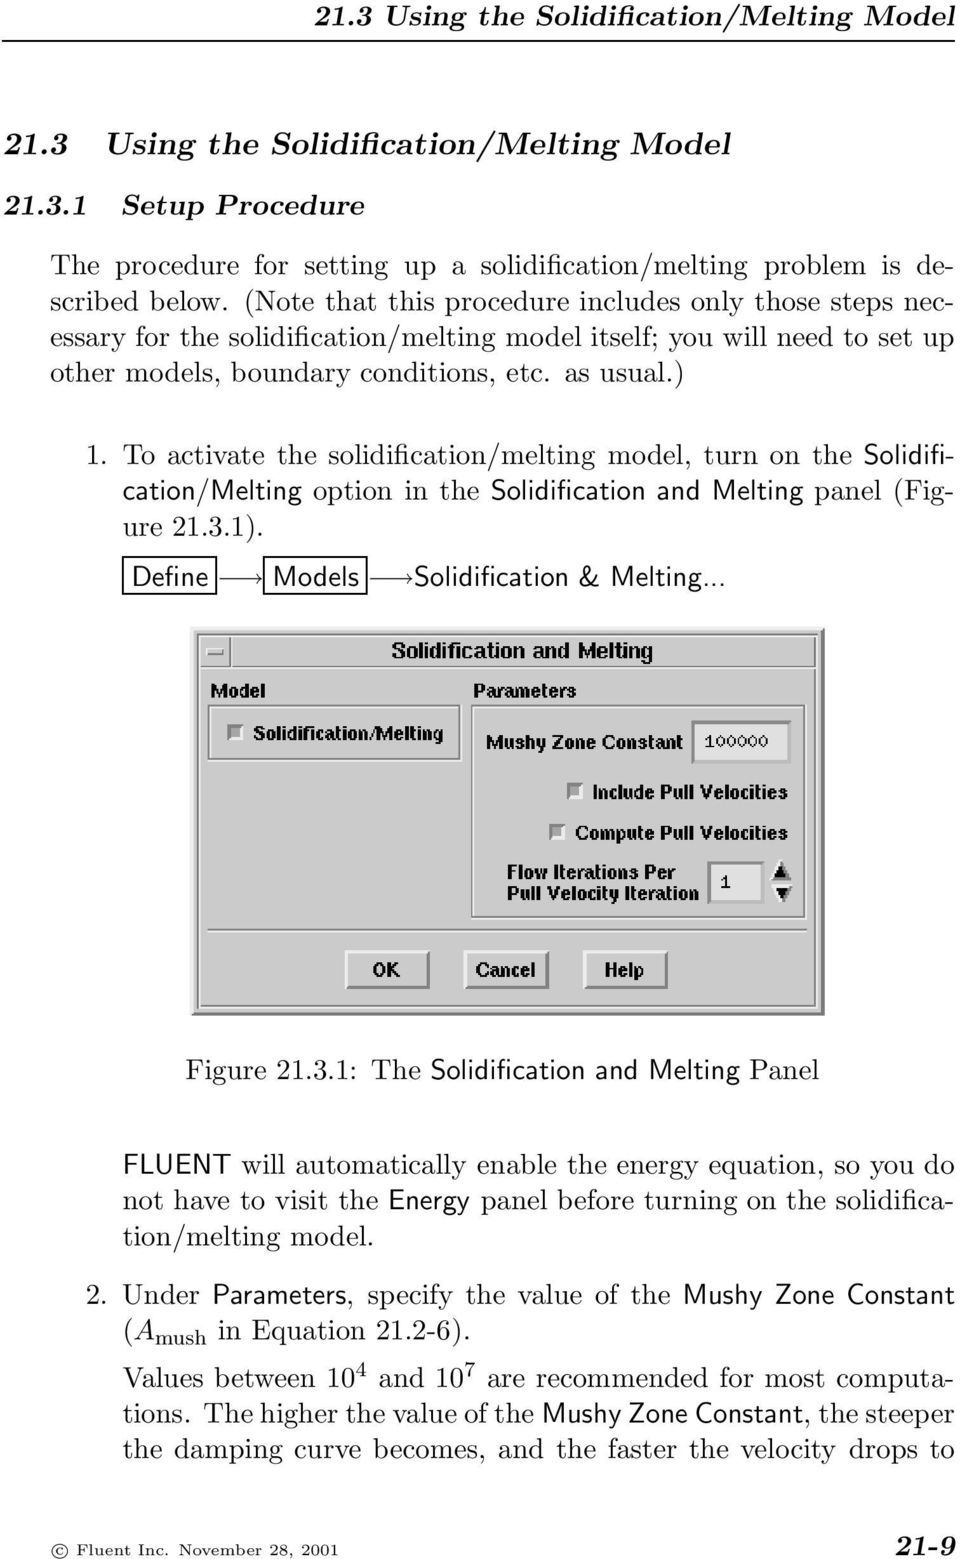 To activate the solidification/melting model, turn on the Solidification/Melting option in the Solidification and Melting panel (Figure 21.3.